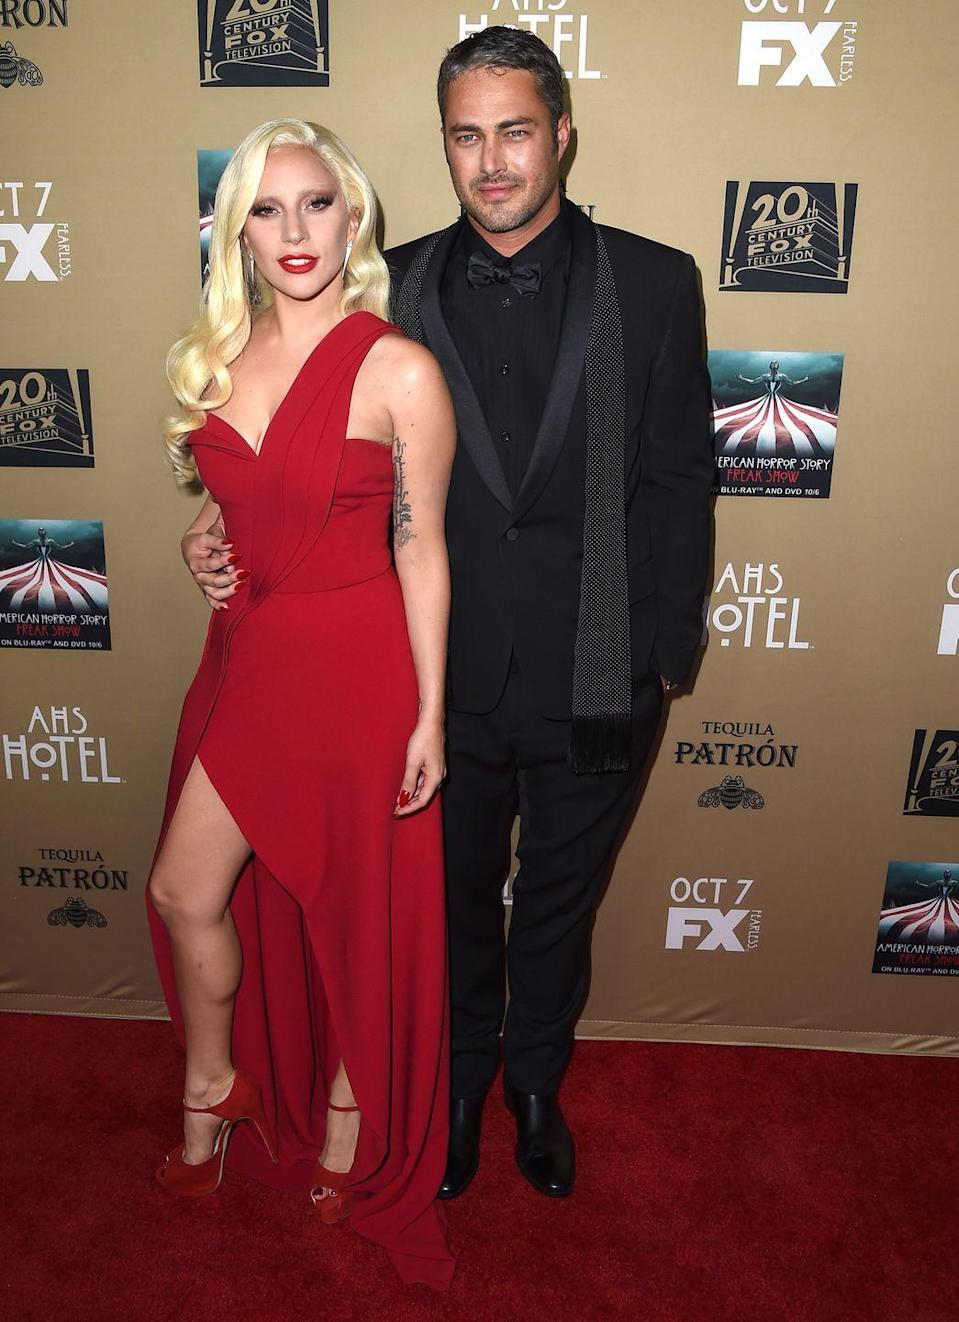 """<p>Fans were sure that the singer and Kinney would make it down the aisle when he <a href=""""http://people.com/celebrity/lady-gaga-and-taylor-kinney-split-couple-end-engagement/"""" rel=""""nofollow noopener"""" target=""""_blank"""" data-ylk=""""slk:popped the question"""" class=""""link rapid-noclick-resp"""">popped the question</a> on Valentine's Day in 2015 after four years of dating. But the former couple announced they were going their separate ways in June 2016. </p>"""